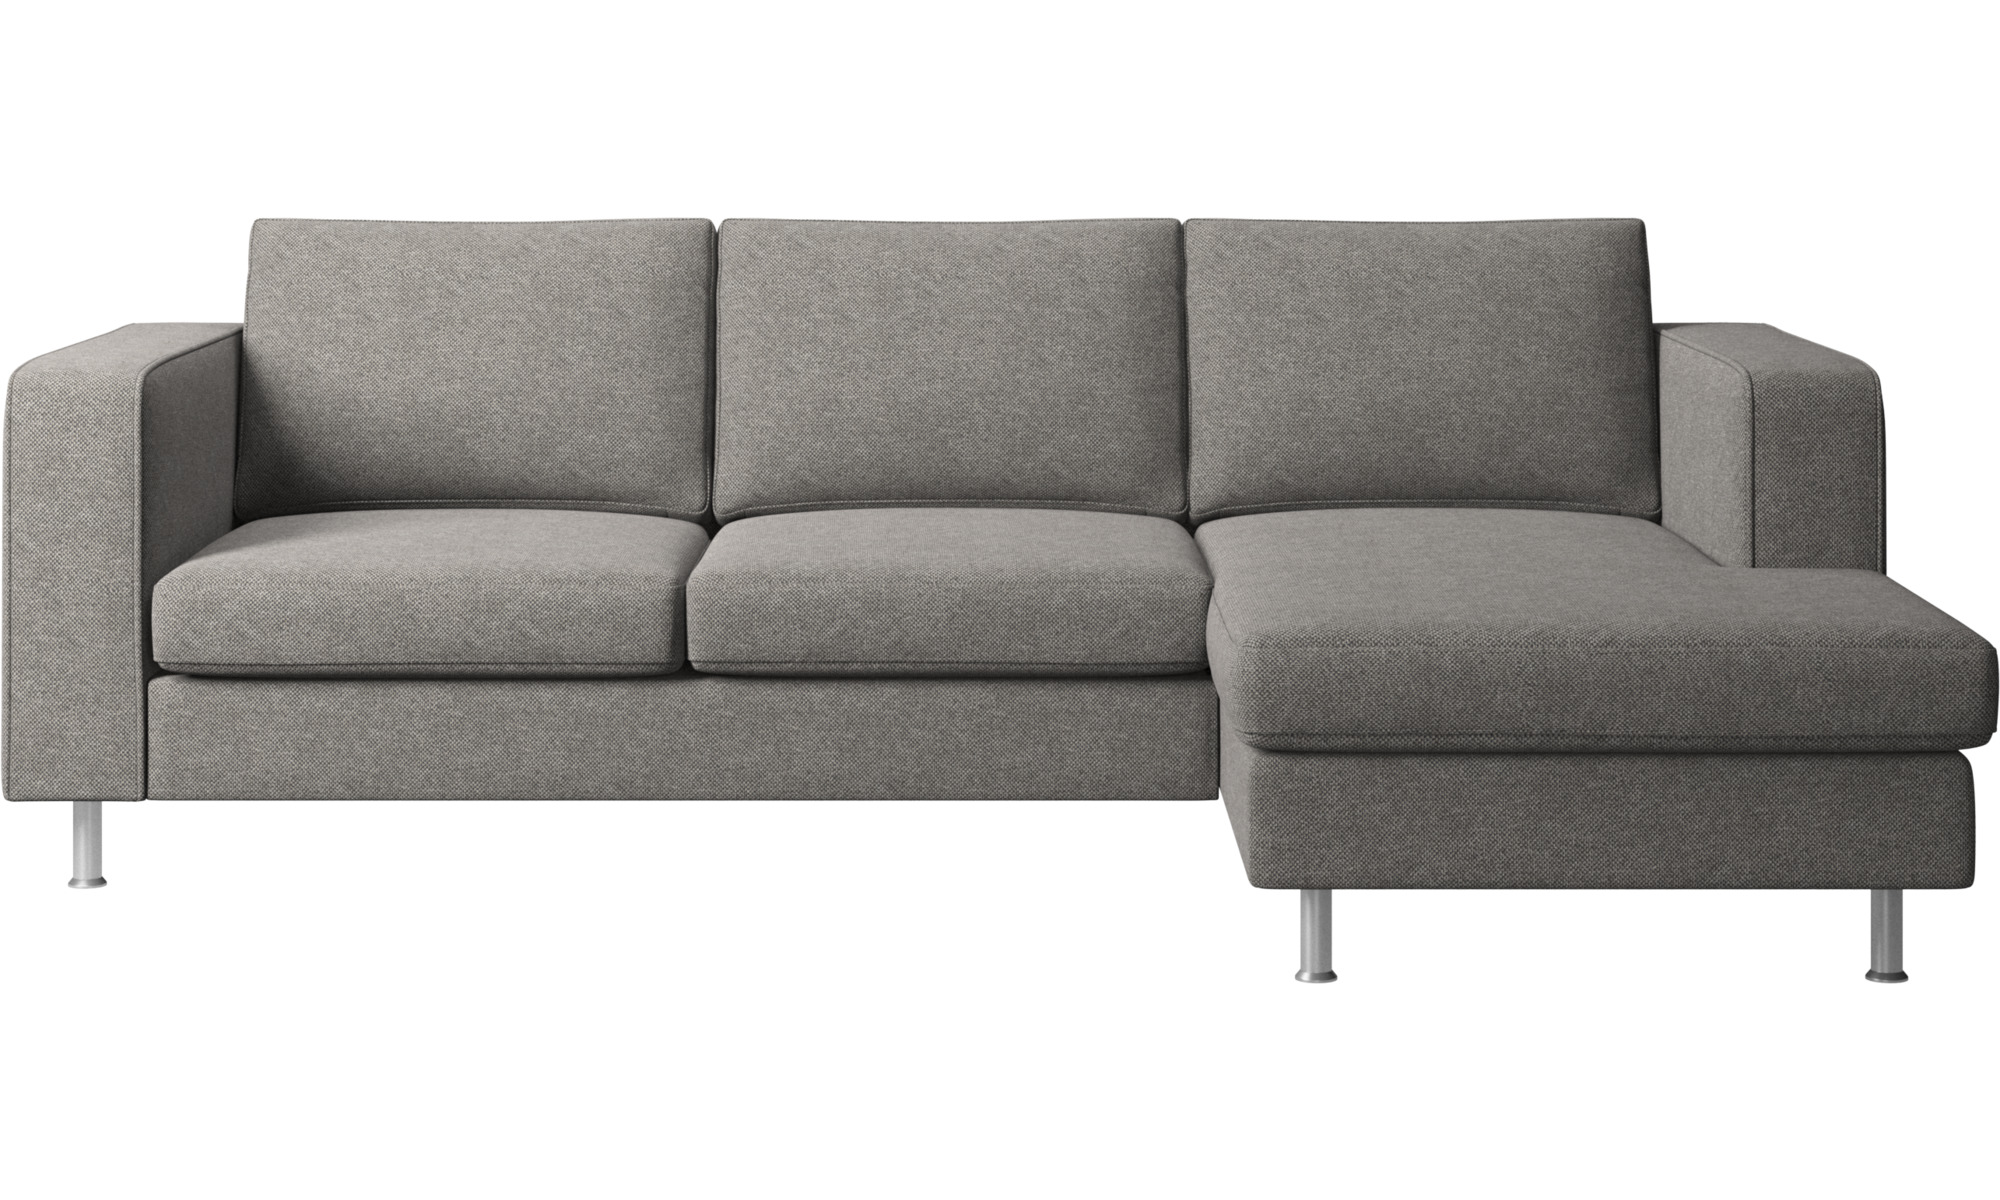 Sofa With Chaise Lounge Chaise Lounge Sofas Indivi 2 Sofa With Resting Unit